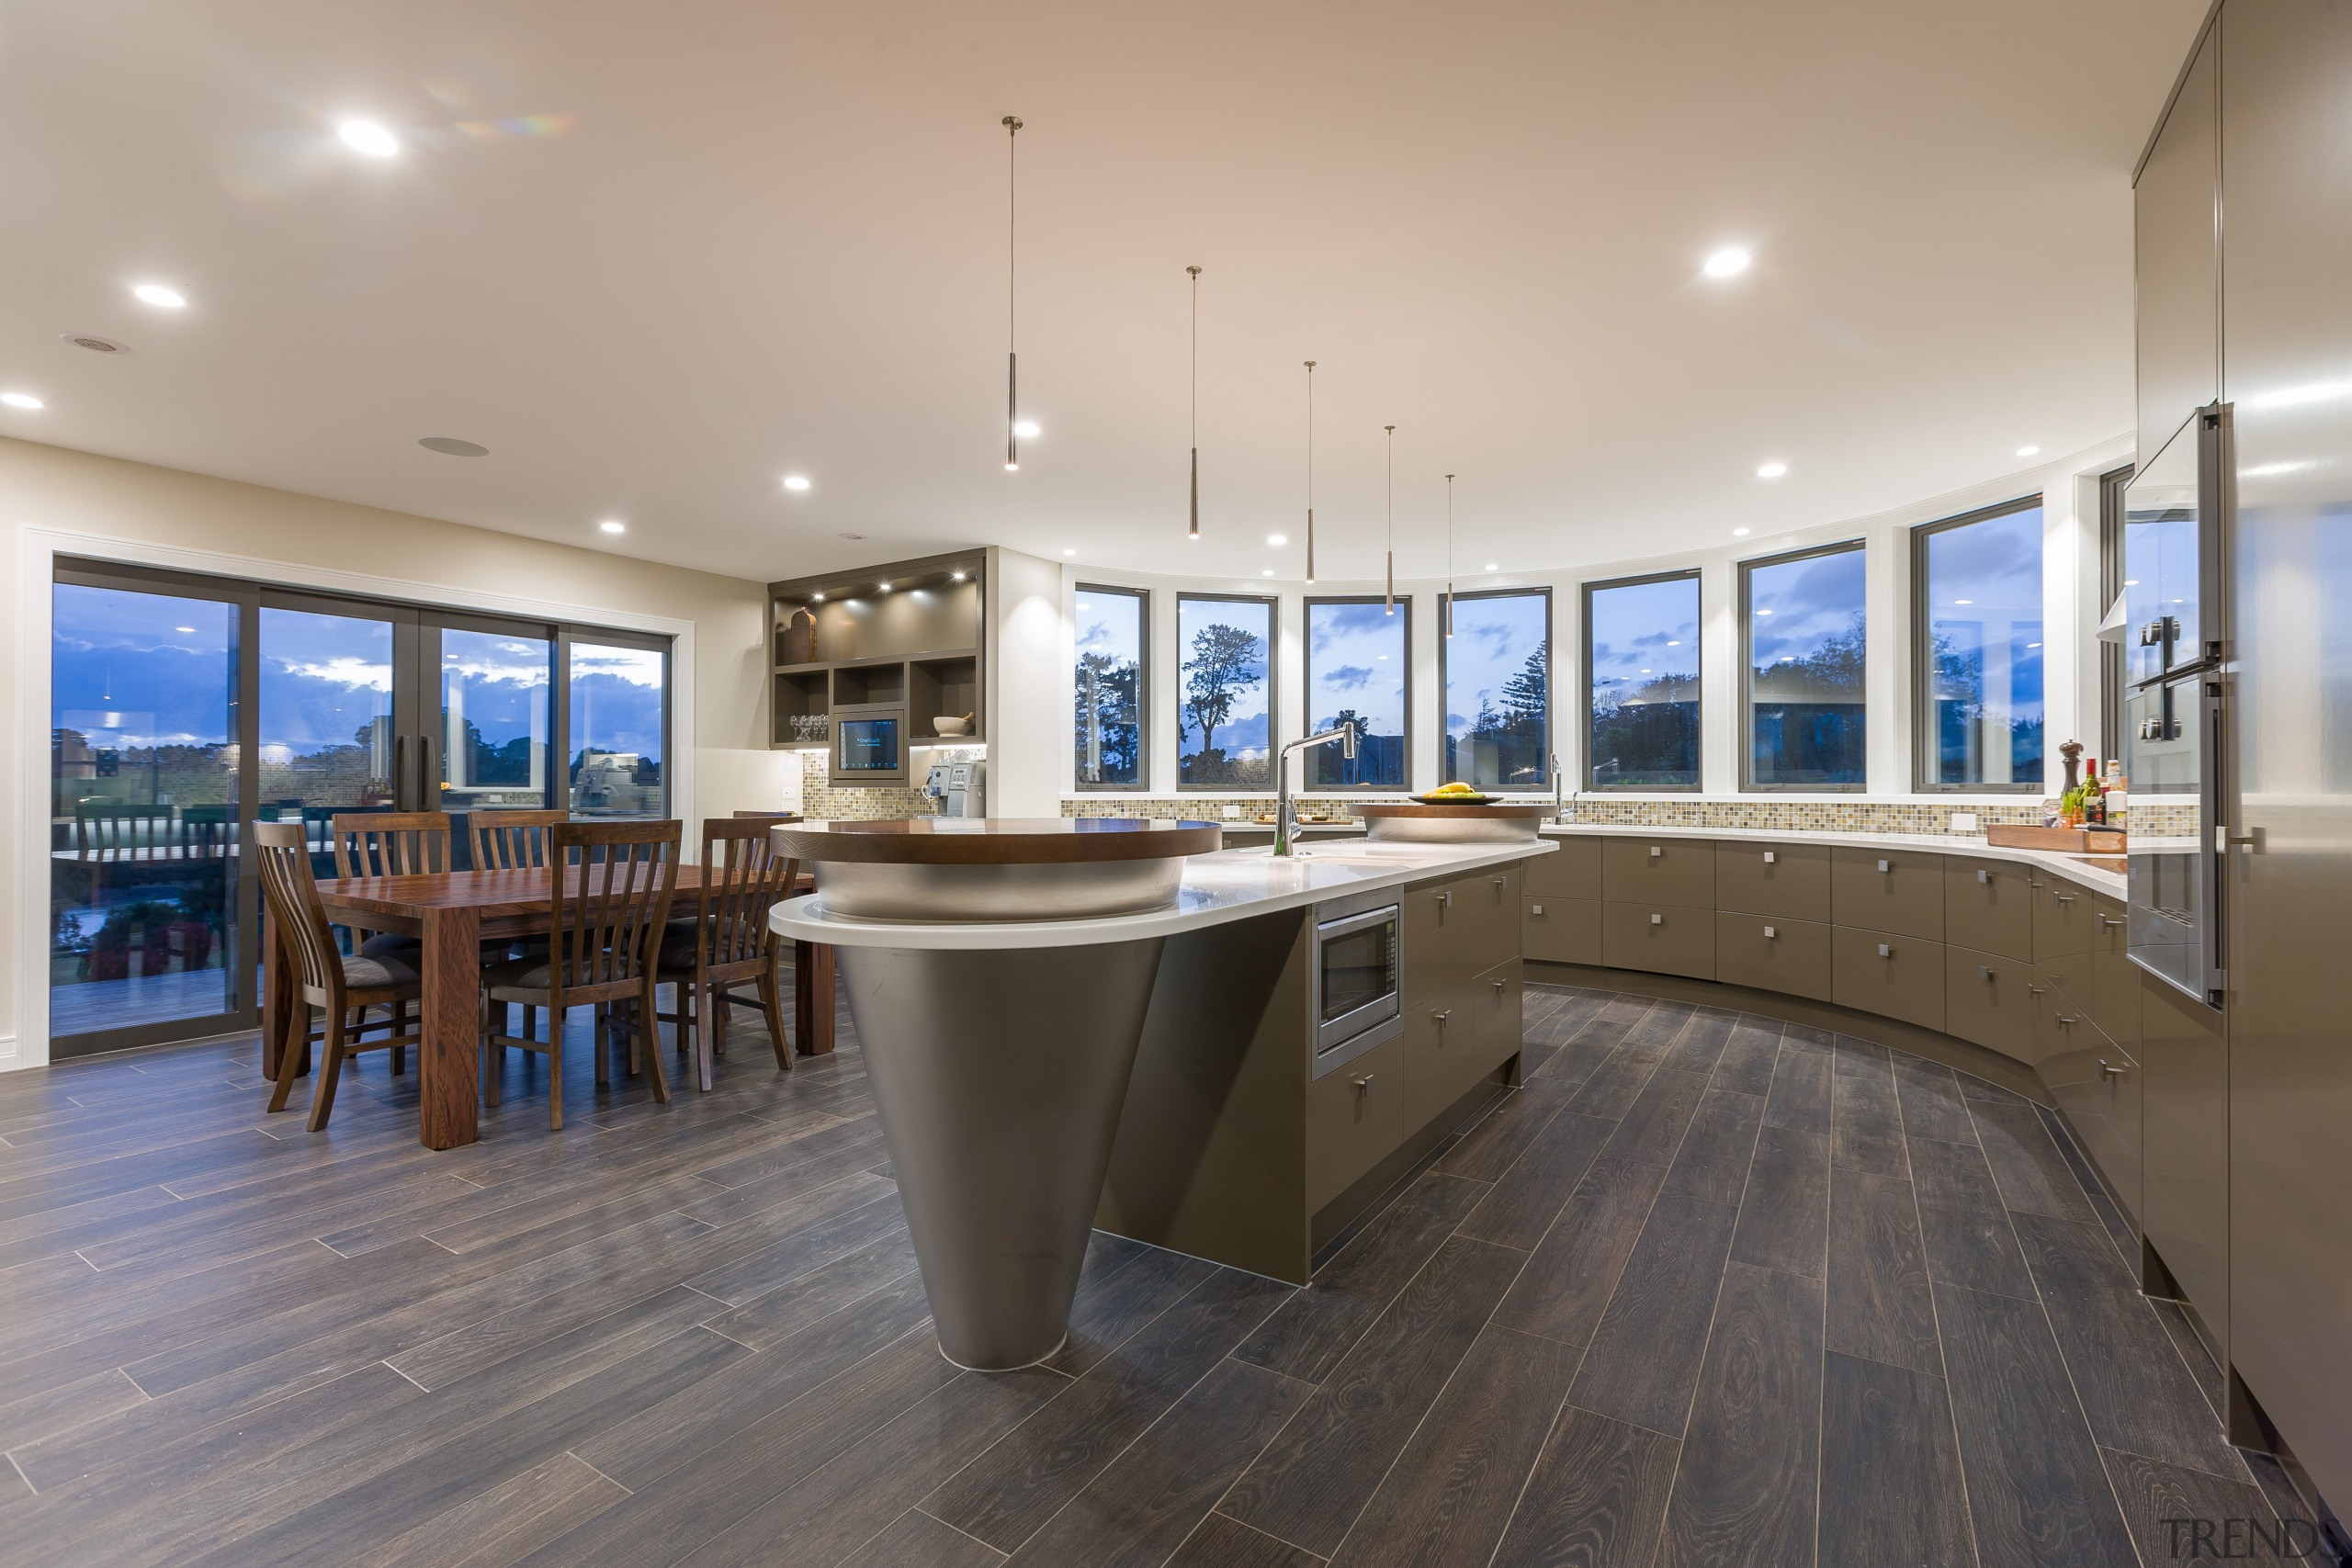 Most cabinetry is under-bench in this kitchen design interior design, real estate, gray